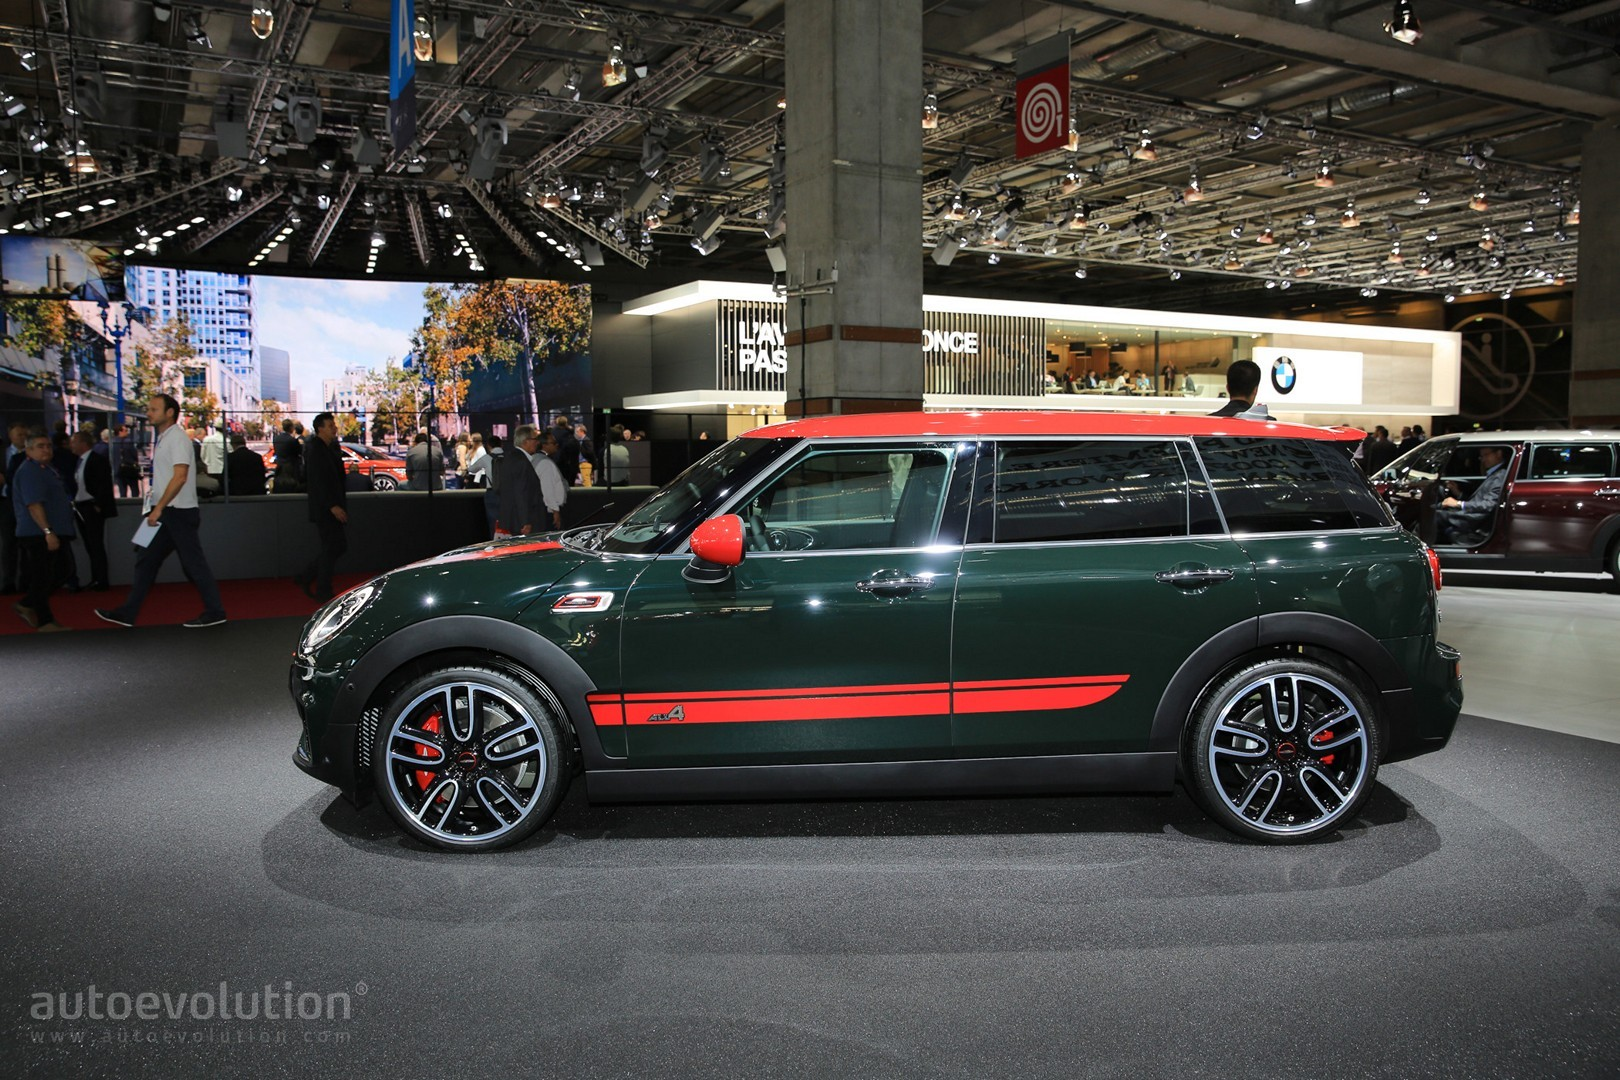 2016 golf gti vs mini cooper s clubman comparison comes down to taste autoevolution. Black Bedroom Furniture Sets. Home Design Ideas